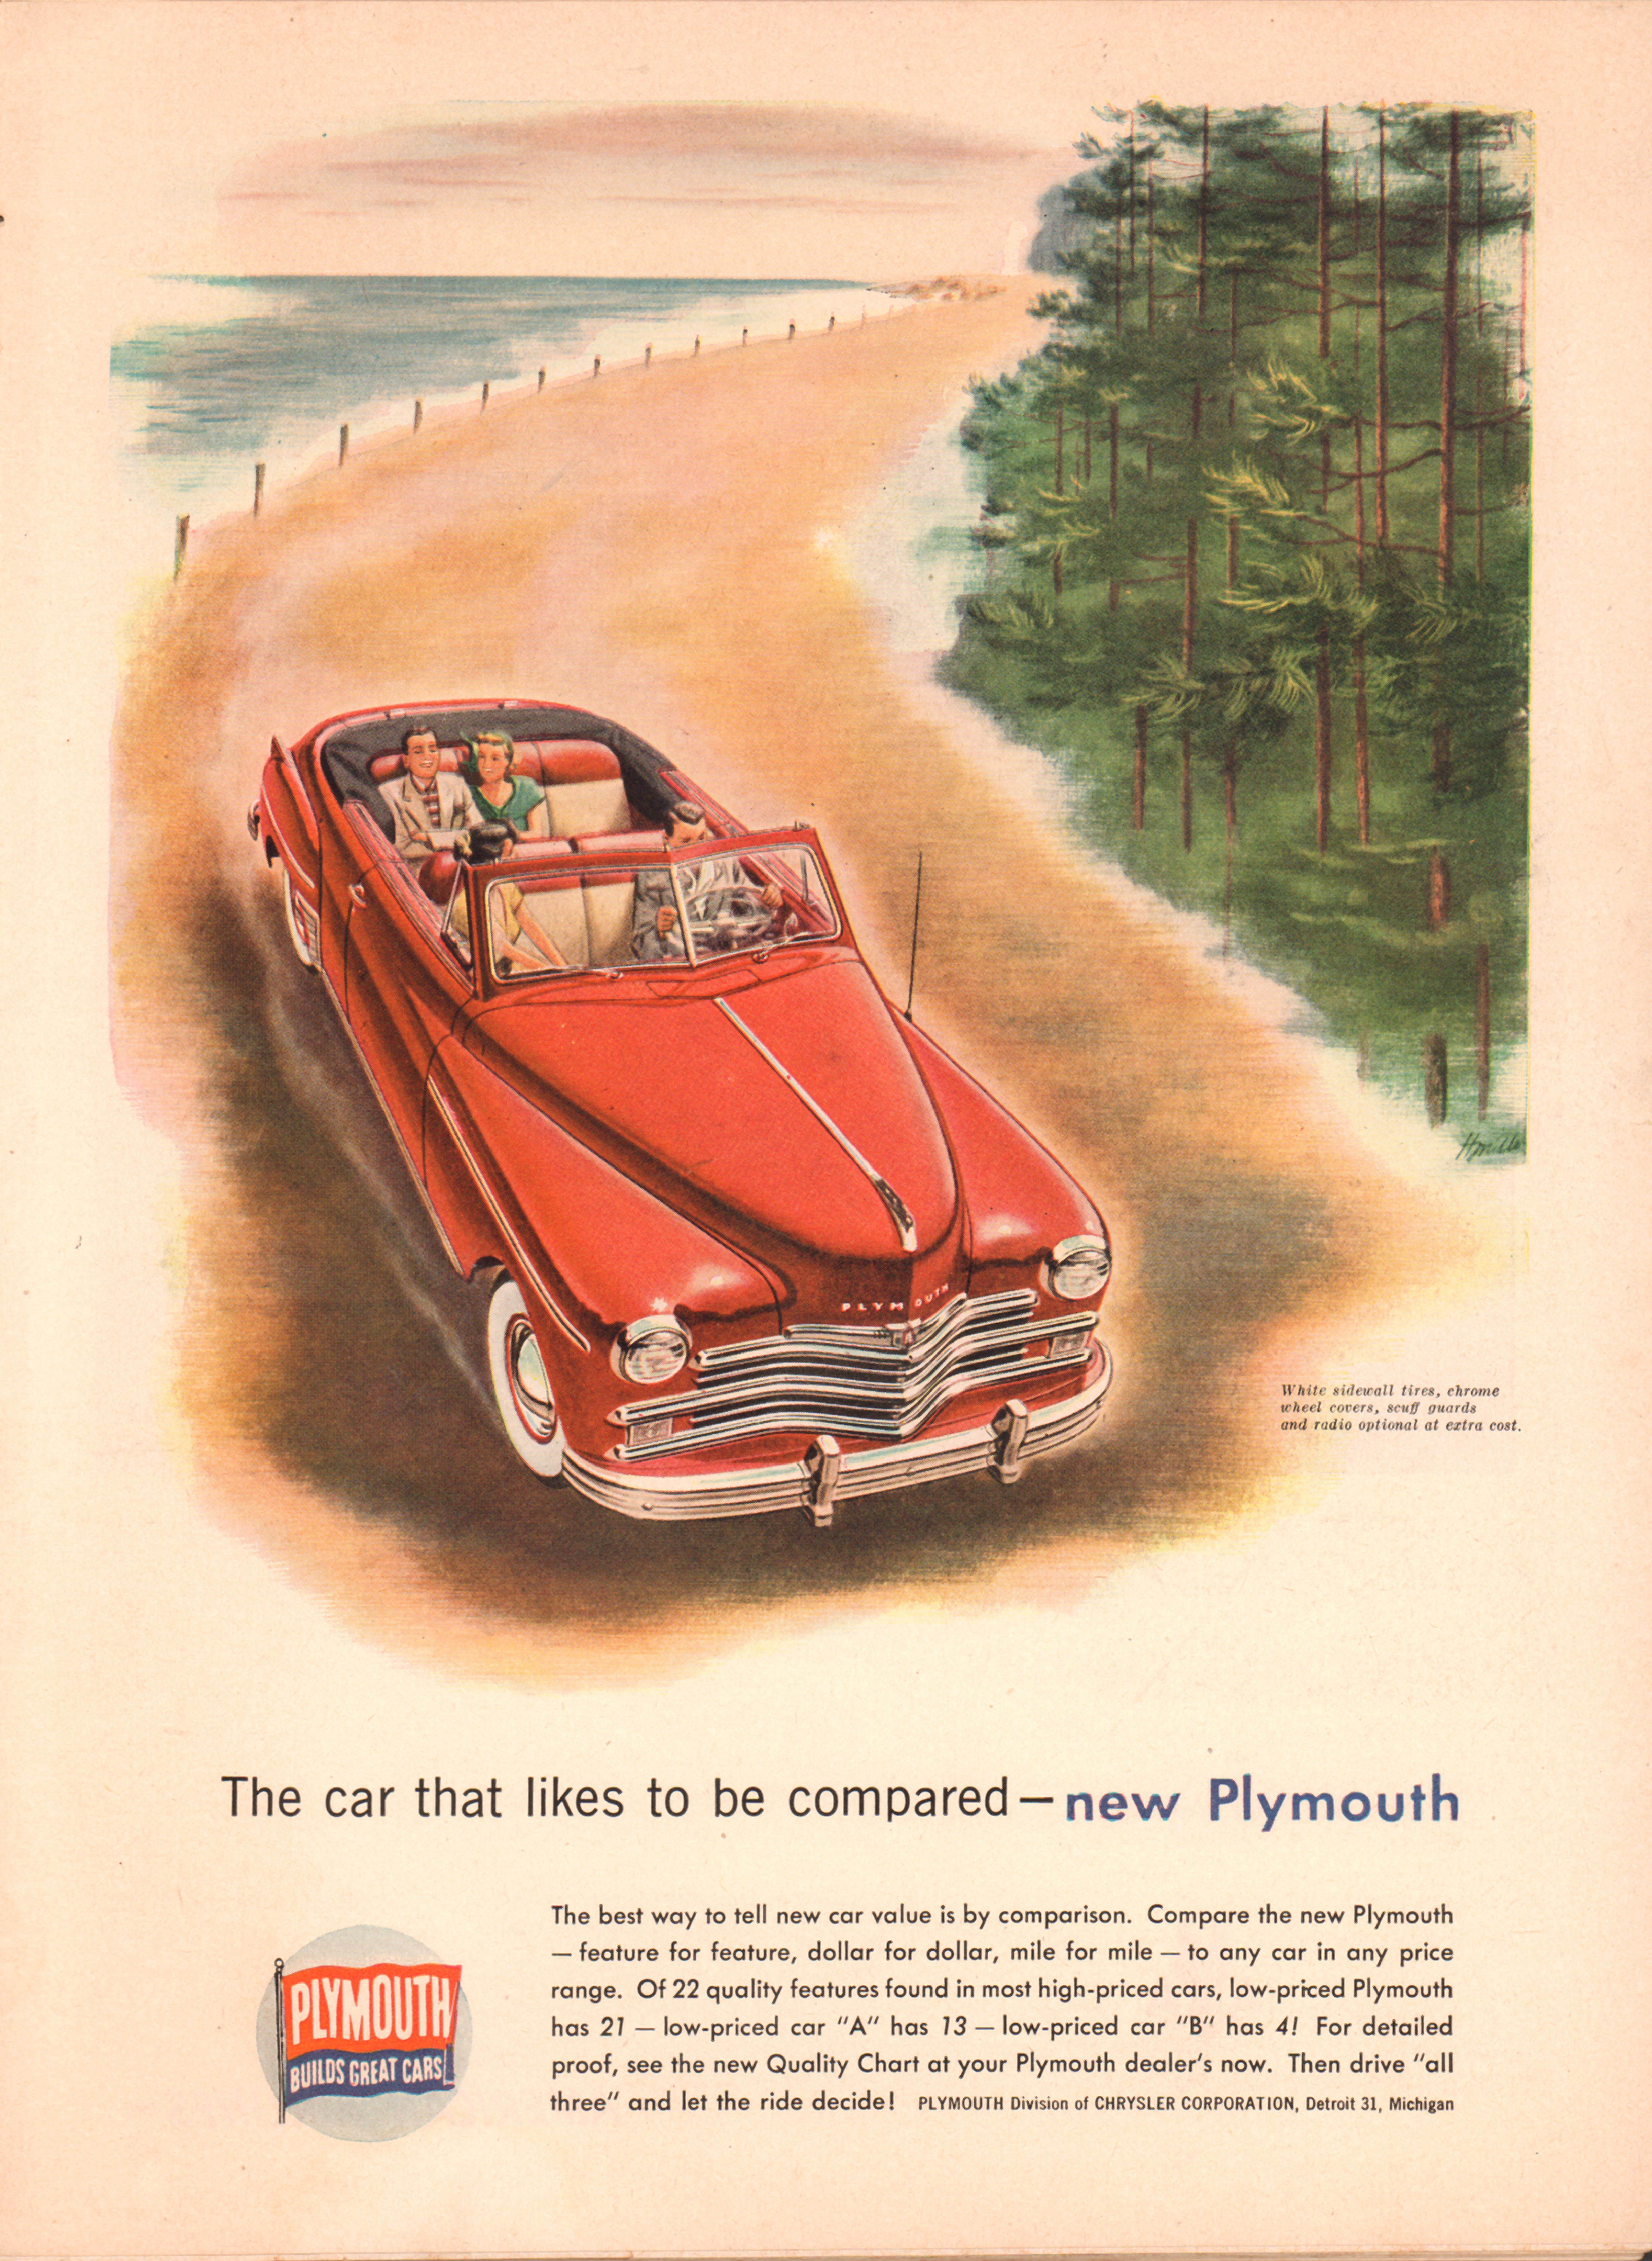 1949 Plymouth - published in Time - July 18, 1949